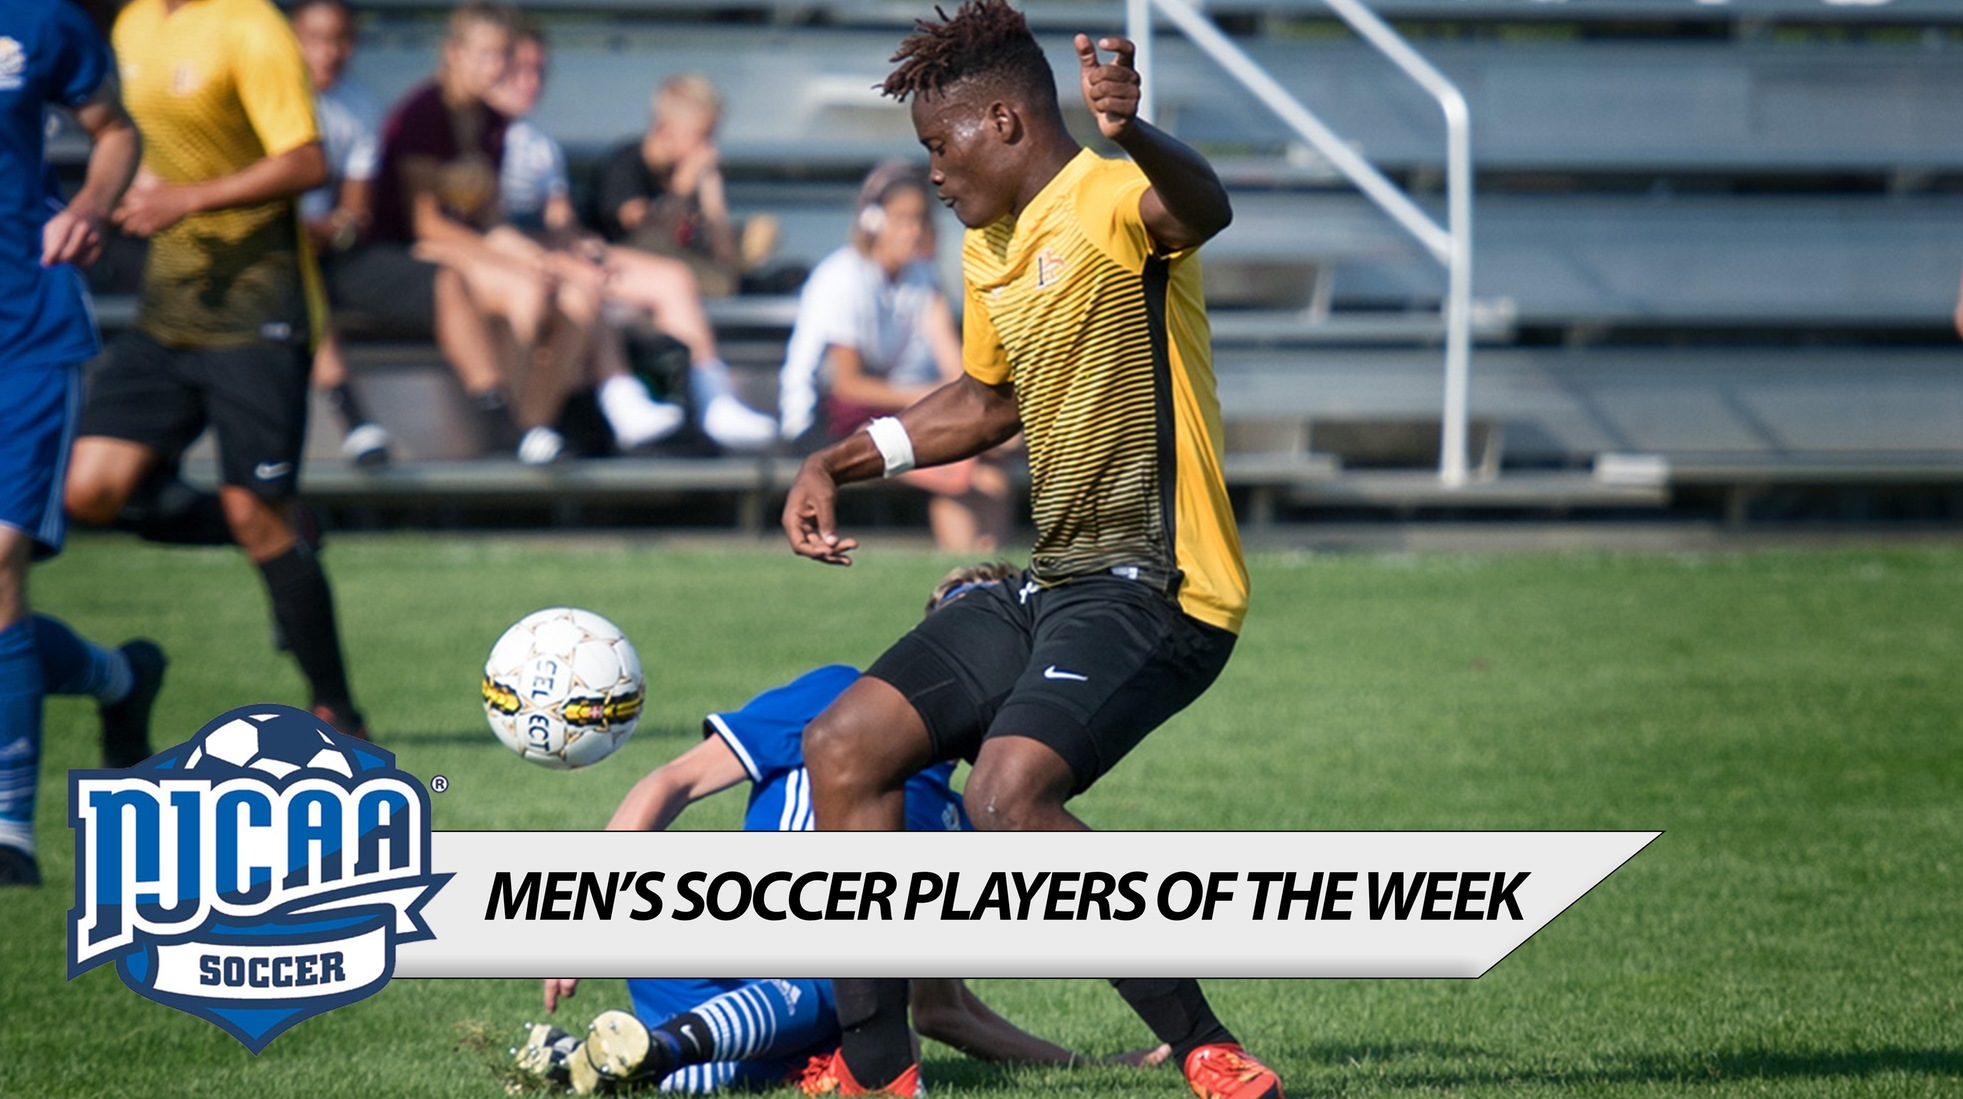 Men's Soccer Players of the Week - (Oct. 30 -Nov. 5)